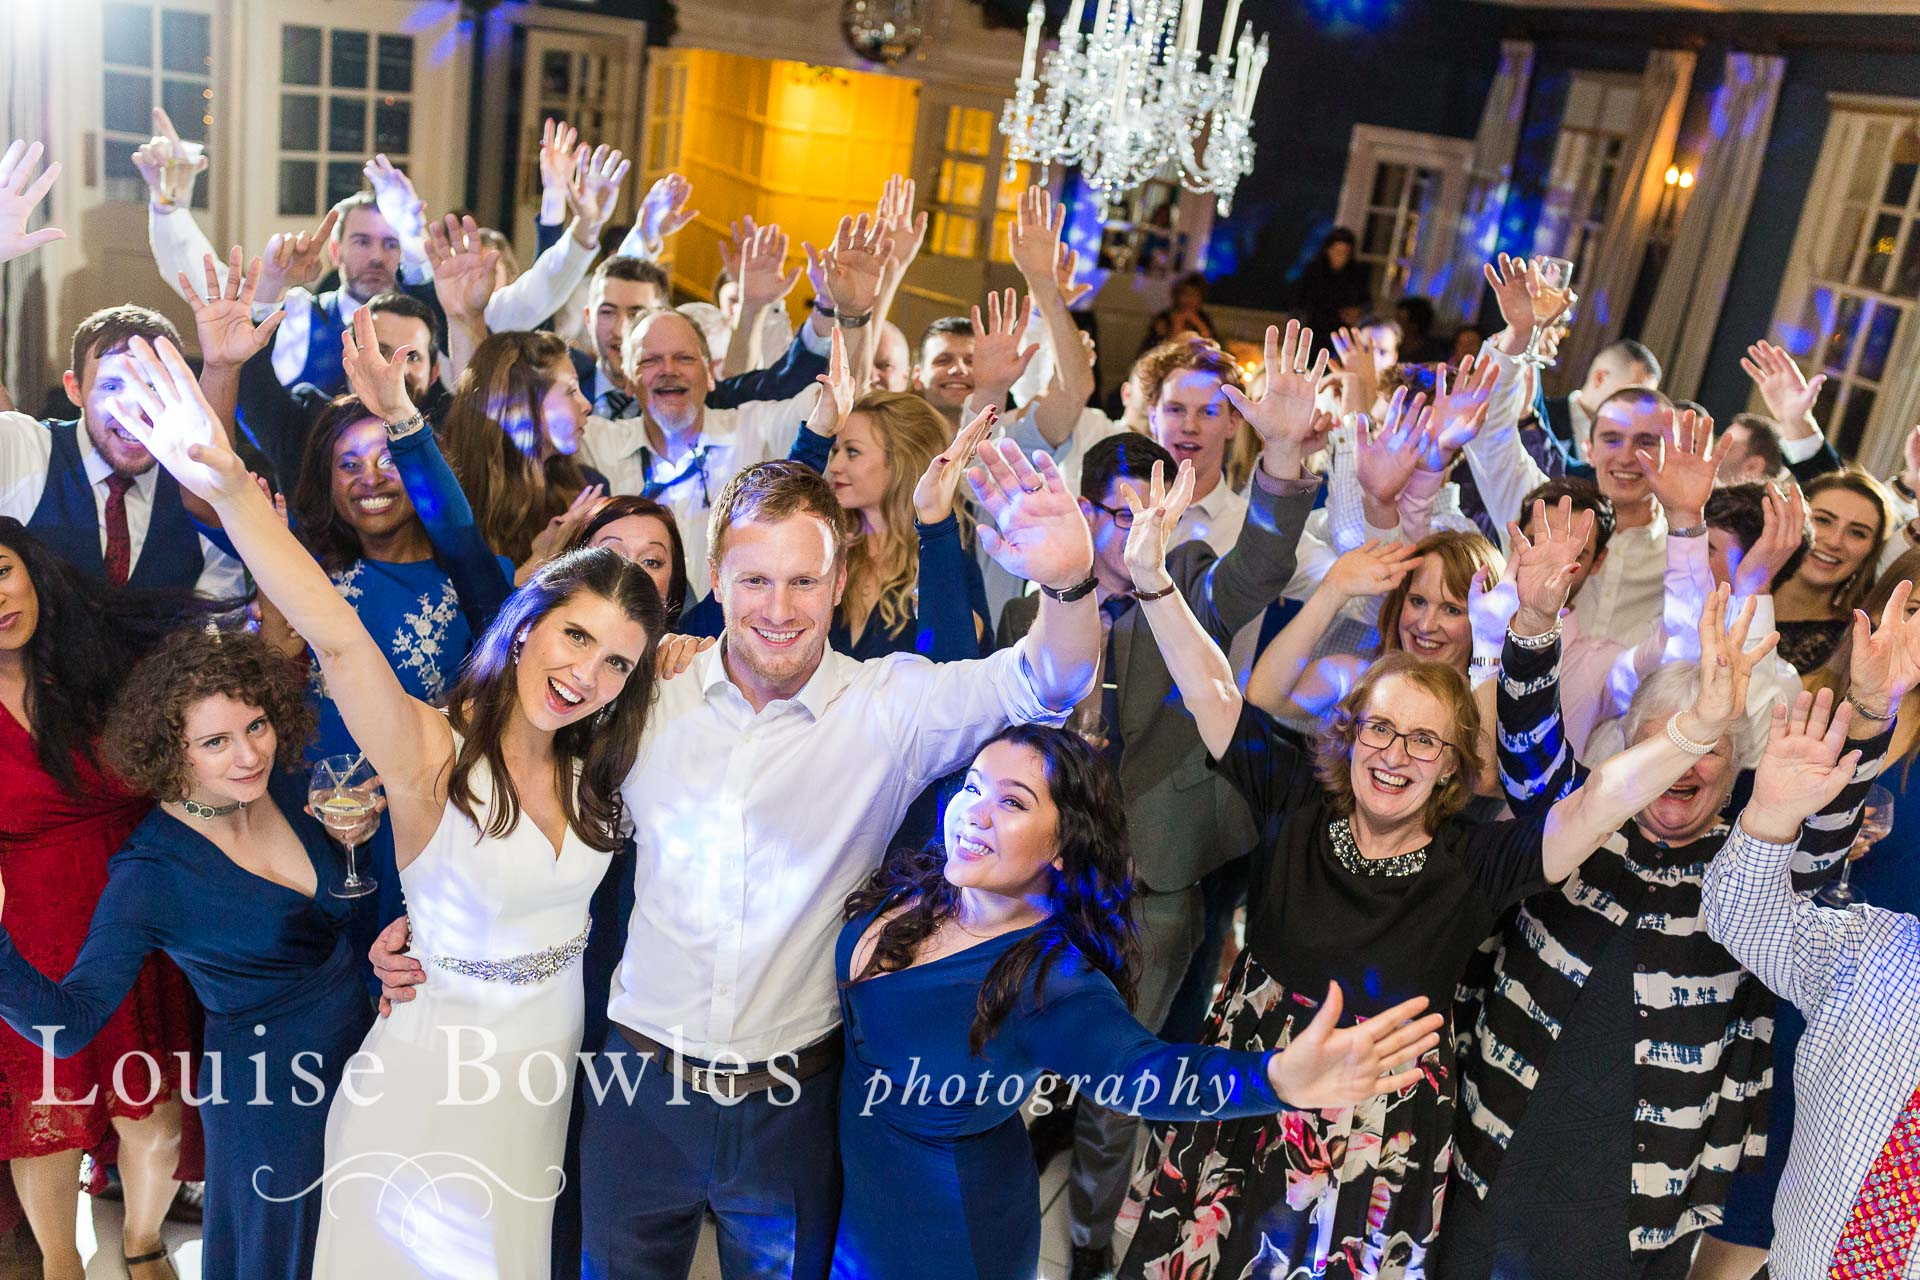 Bride & Groom having a ball with their guests